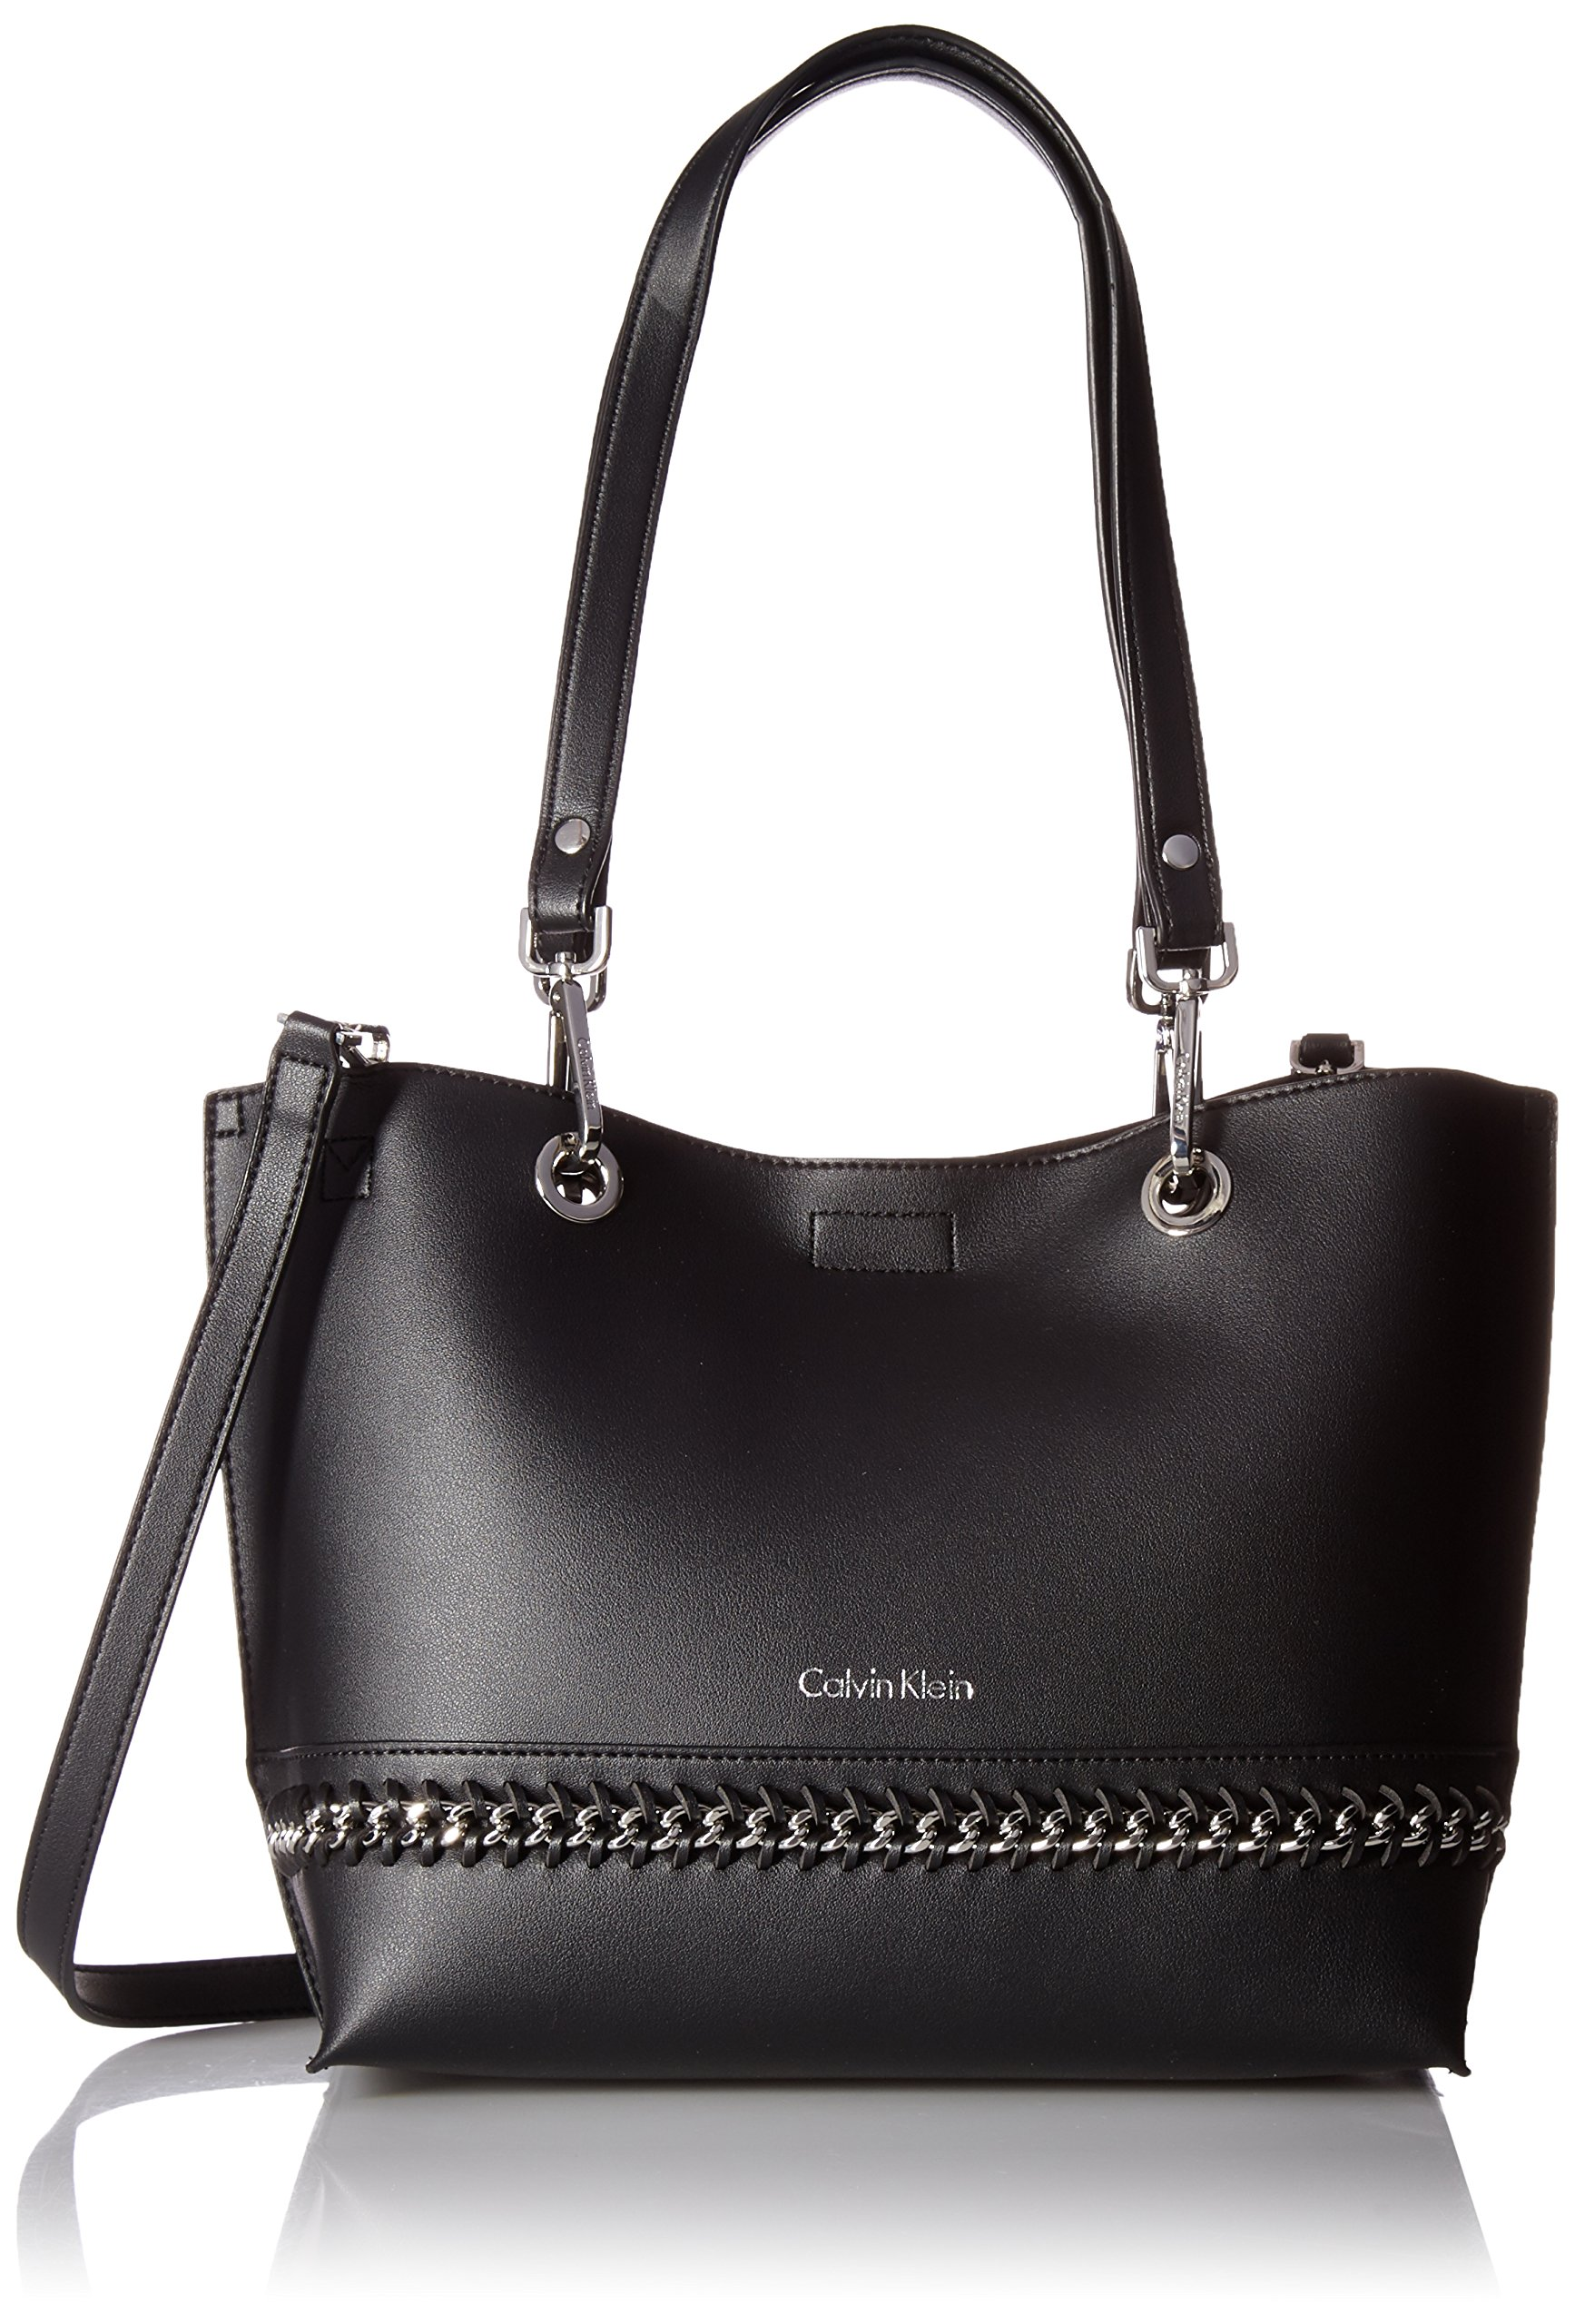 Calvin Klein With Optional Silver Chain Black Clutch